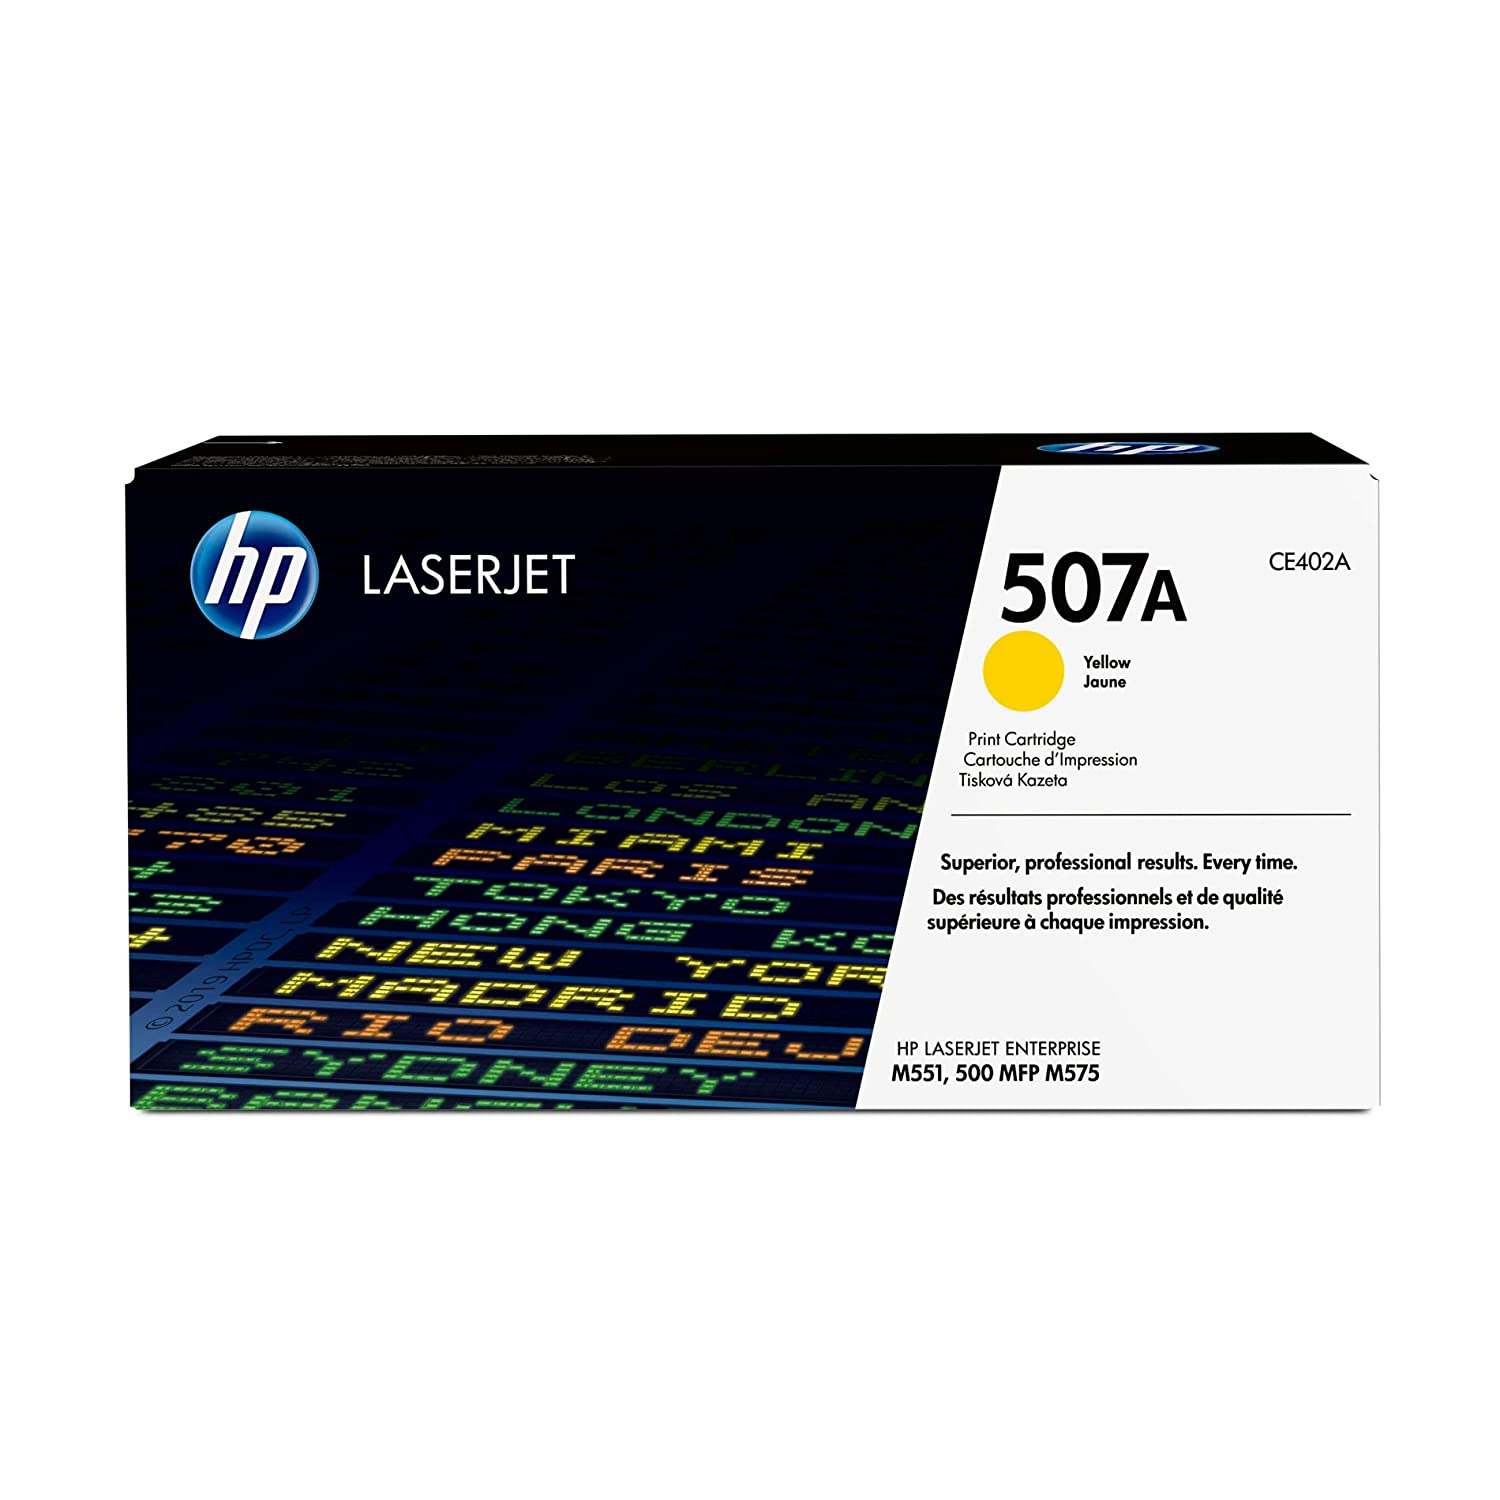 HP 507A | CE402A | Toner Cartridge | Yellow